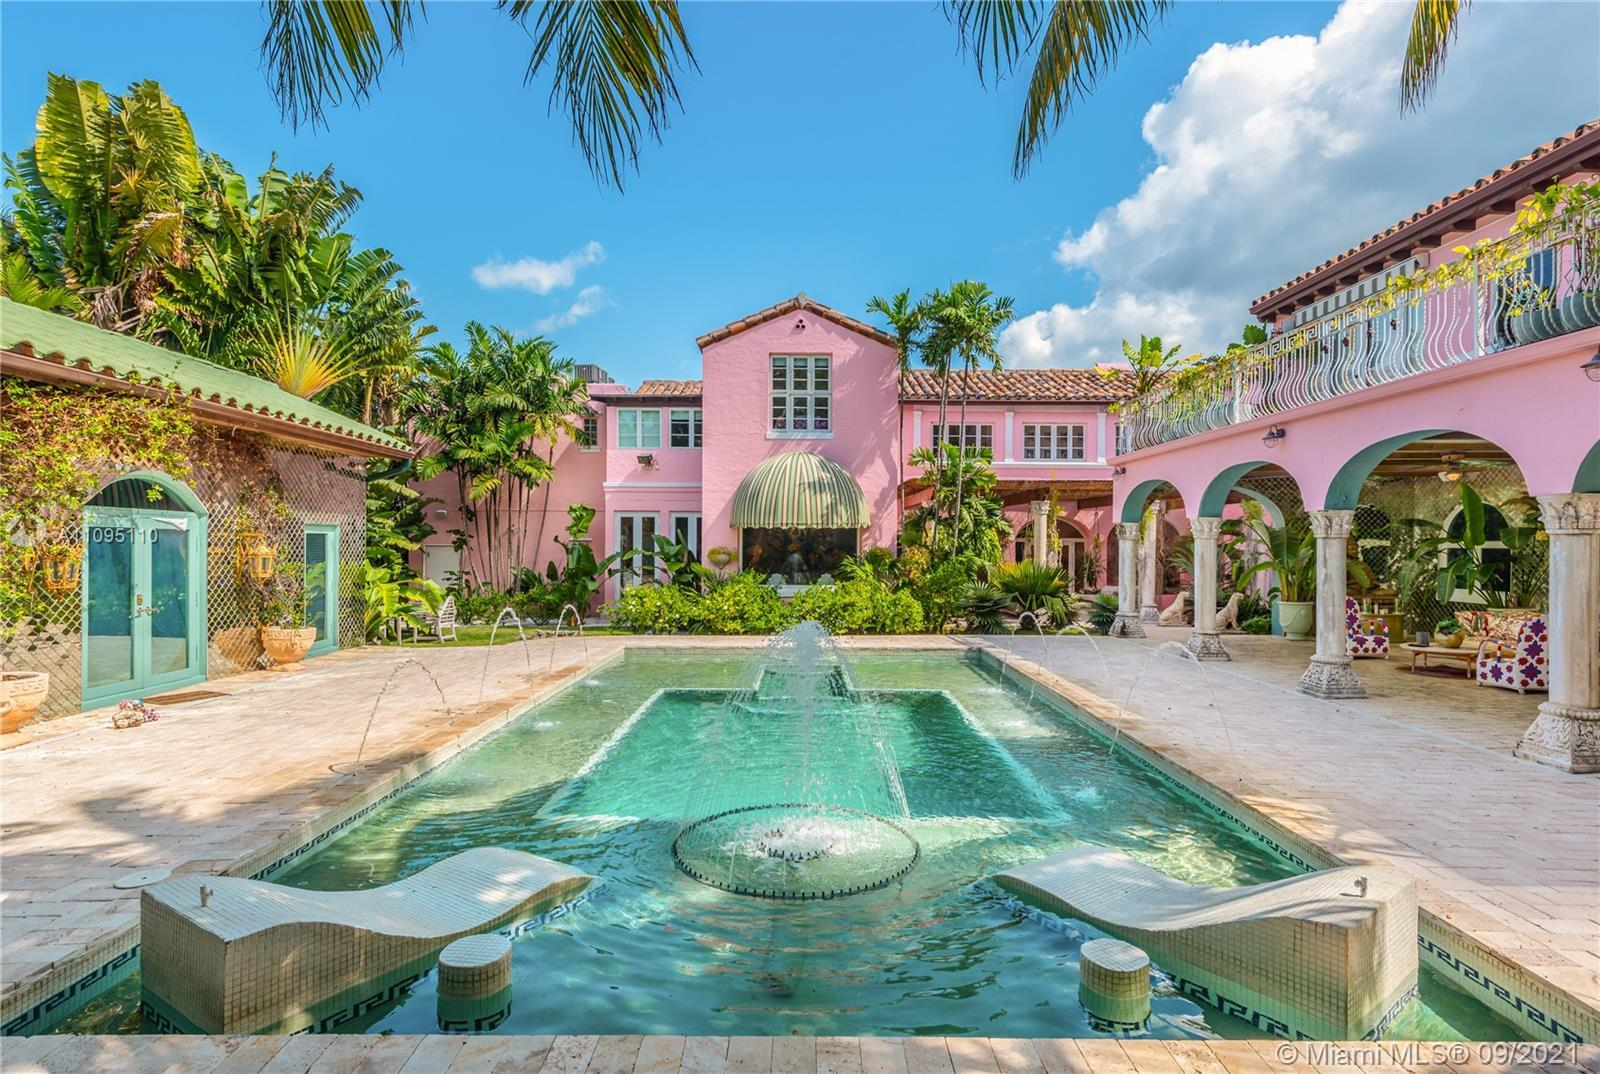 This classic Mediterranean Revival estate was meticulously restored and updated by Ximena Caminos, a